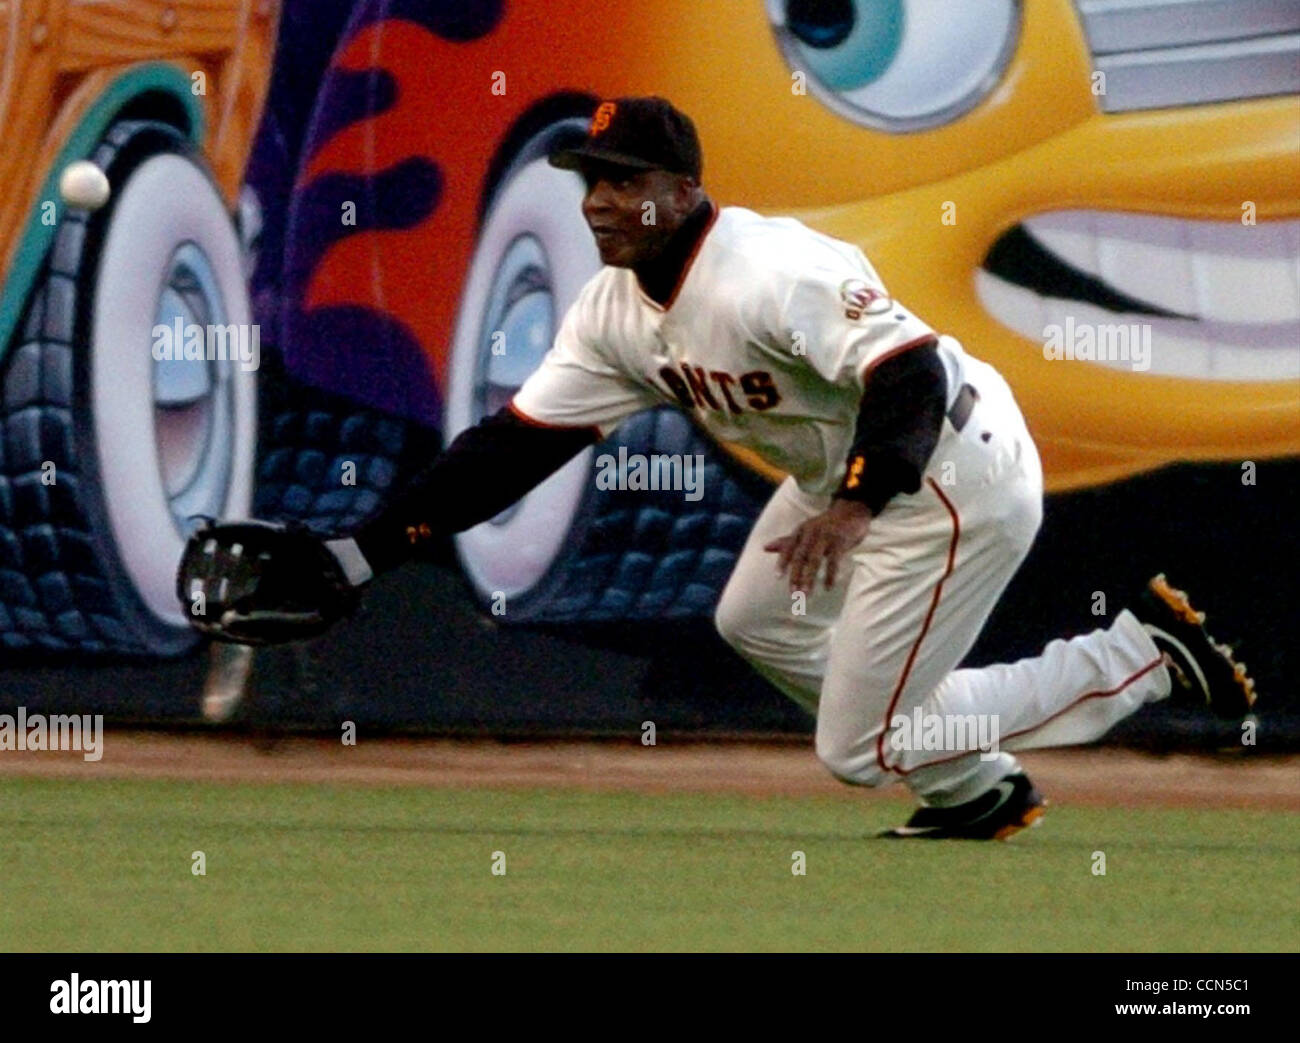 999f127dbb Barry Bonds of the Giants misses the long drive by Ken Griffey Jr. of the  Reds in the third inning for a double on Wednesday August 4, 2004 in San  Francisco ...